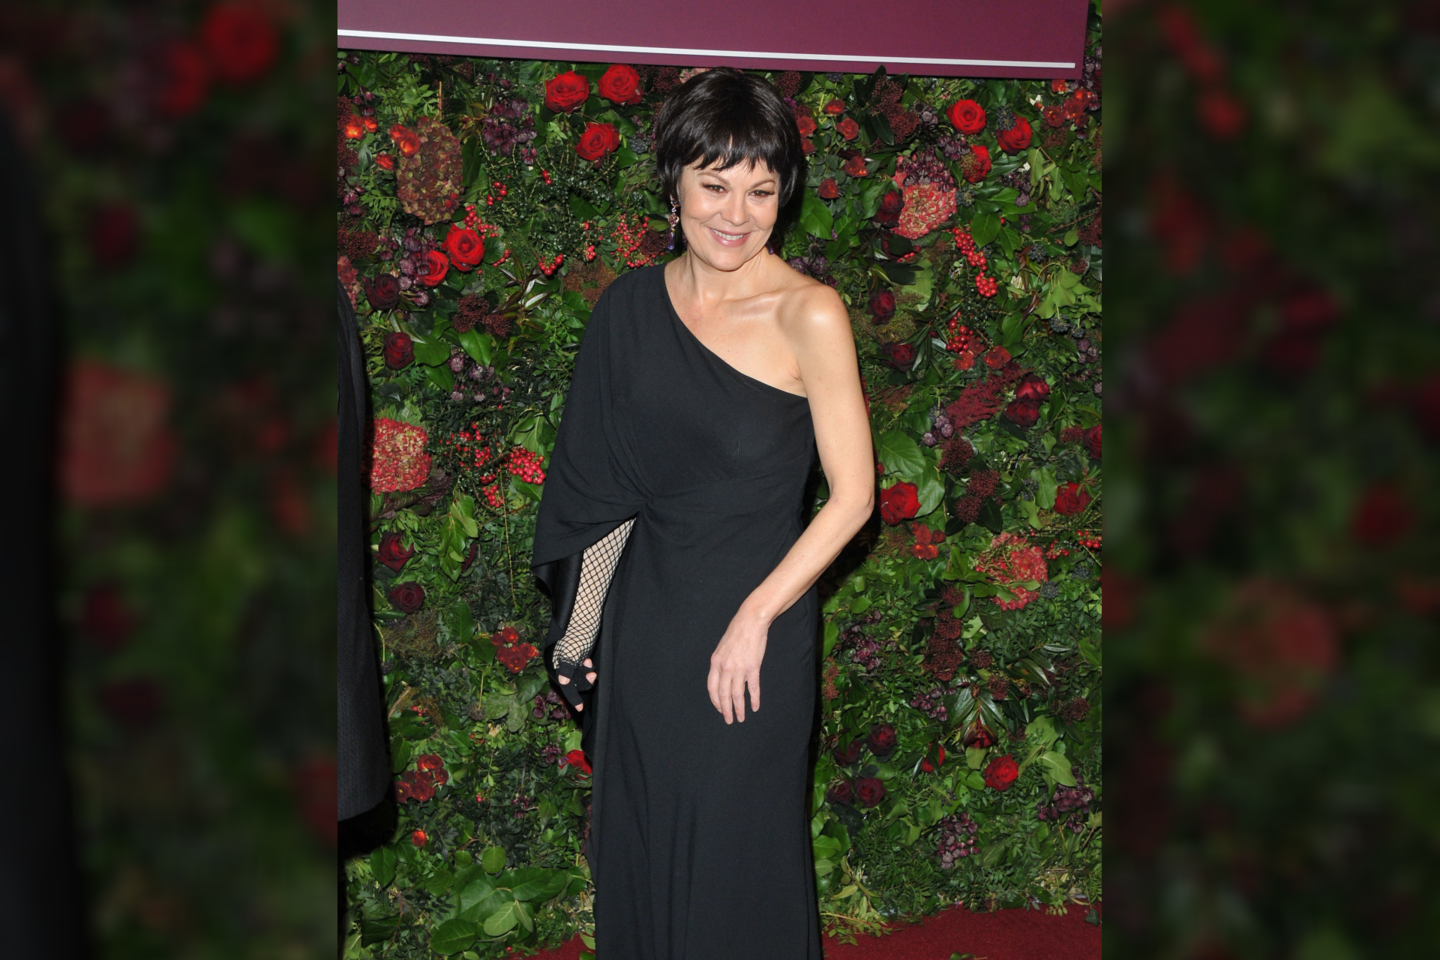 Helen McCrory.<br>Can Nguyen/Capital Pictures/Scanpix nuotr.